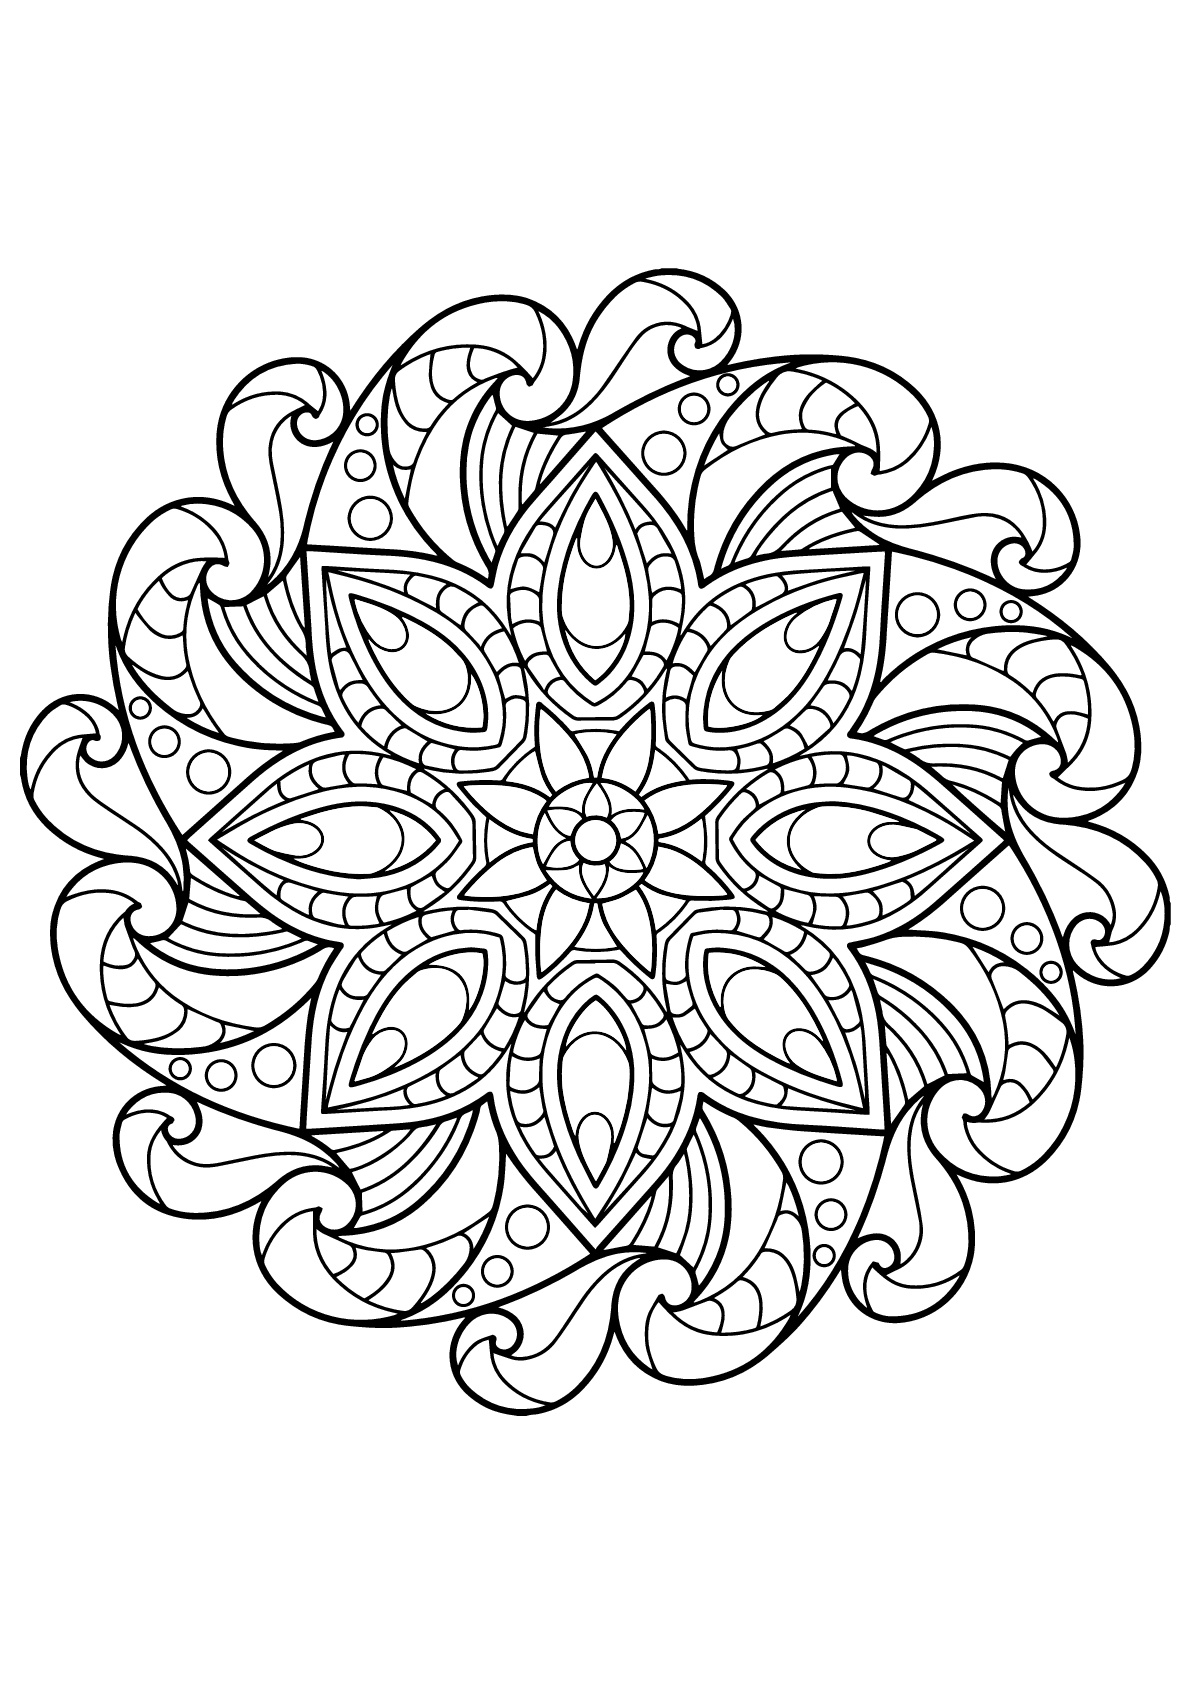 Beautiful Mandala from Free Coloring book for adults